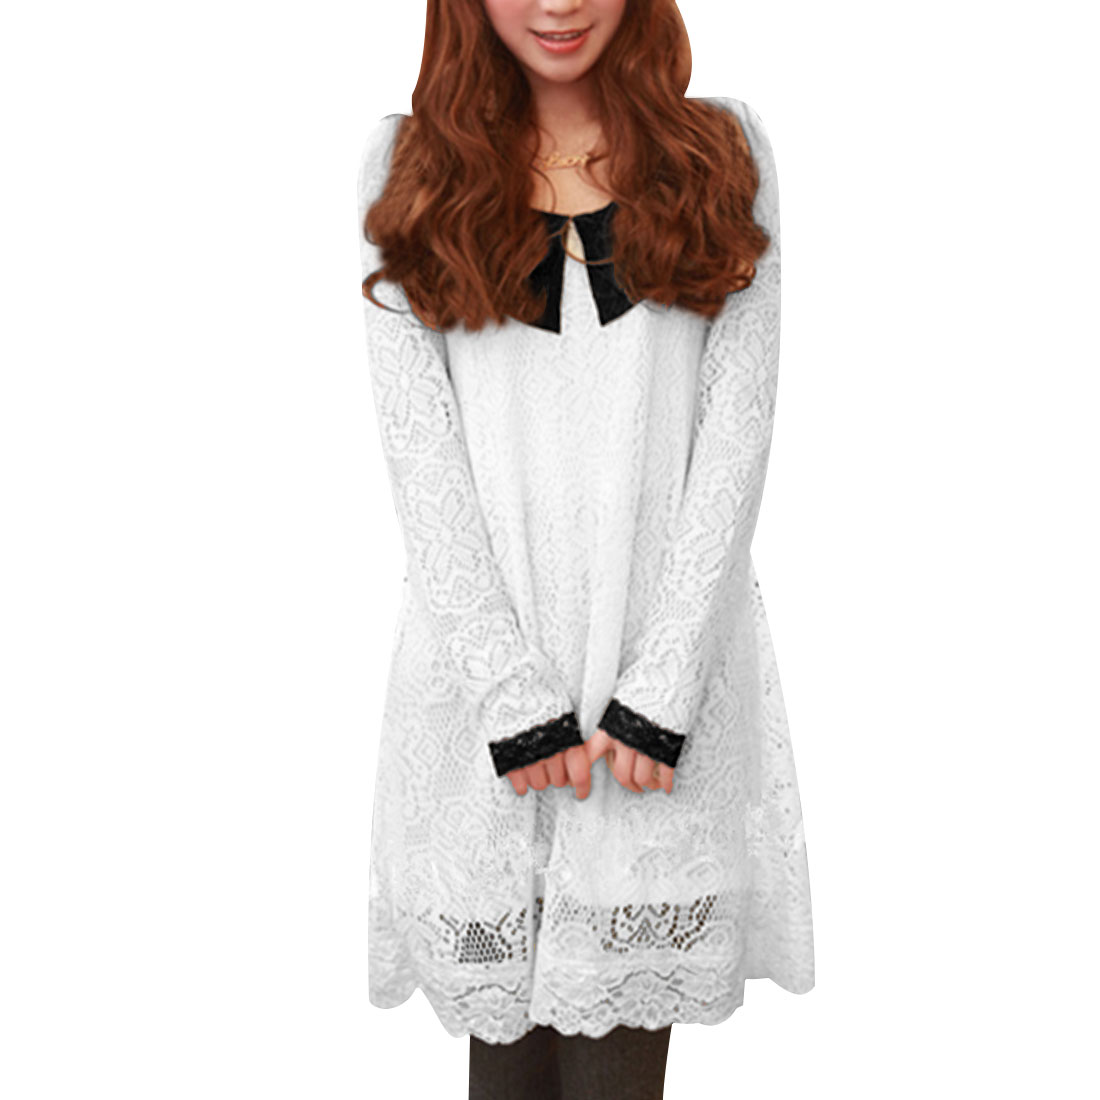 Ladies Peter Pan Collar Crochet White Lace Design Autumn Cable Dress XS